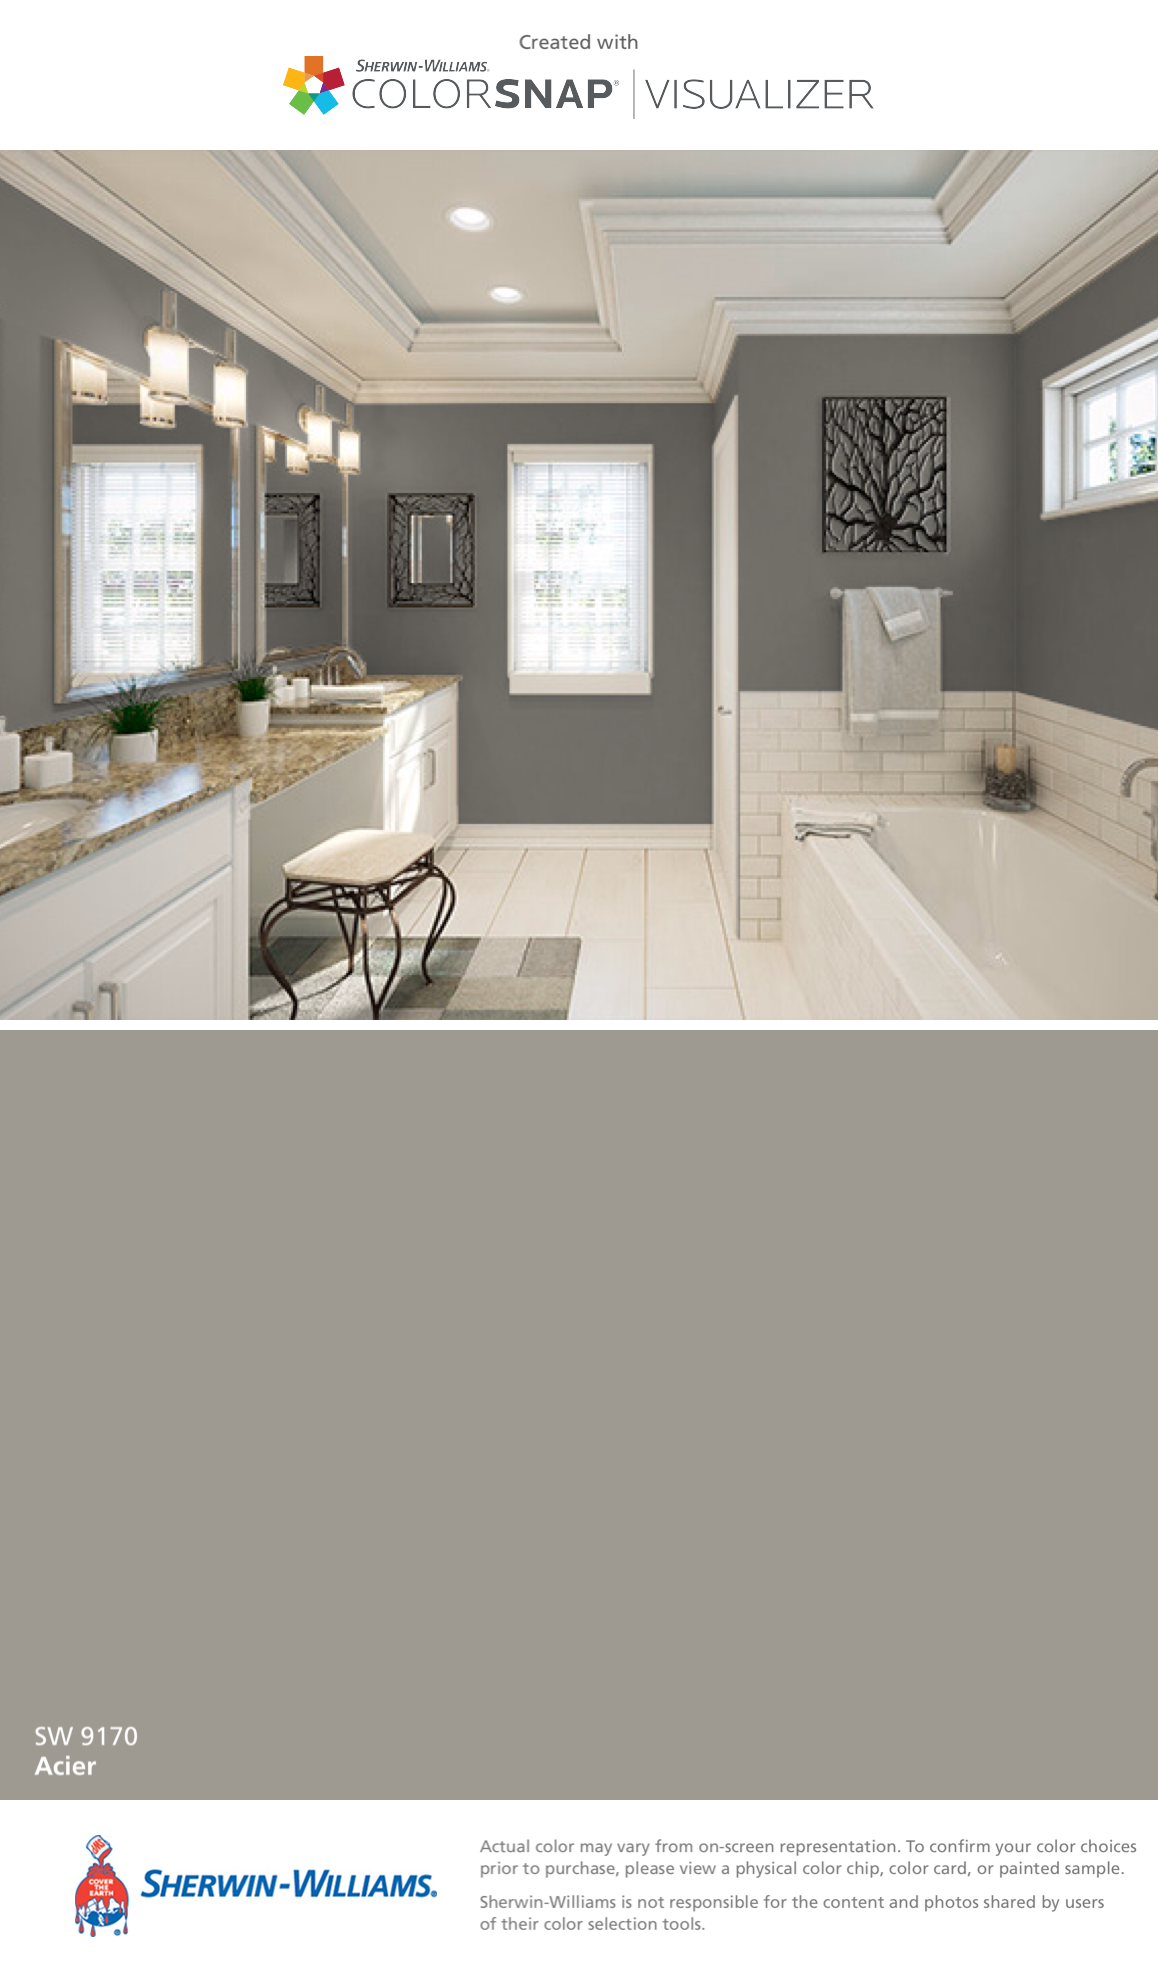 057f6d70625c06b9bed6ce9b66ccdef9 Paint Ideas For Kitchen Tan on tan wall paint, tan carpet ideas, tan kitchen backsplash ideas, tan kitchen floor, yellow kitchen ideas, tan roof ideas, tan living room ideas, tan kitchen walls, tan interior painting ideas, tan kitchen benjamin moore, tan kitchen wallpaper, tan kitchen colors, tan kitchen design, tan painted kitchen cabinets, tan kitchen remodeling ideas,